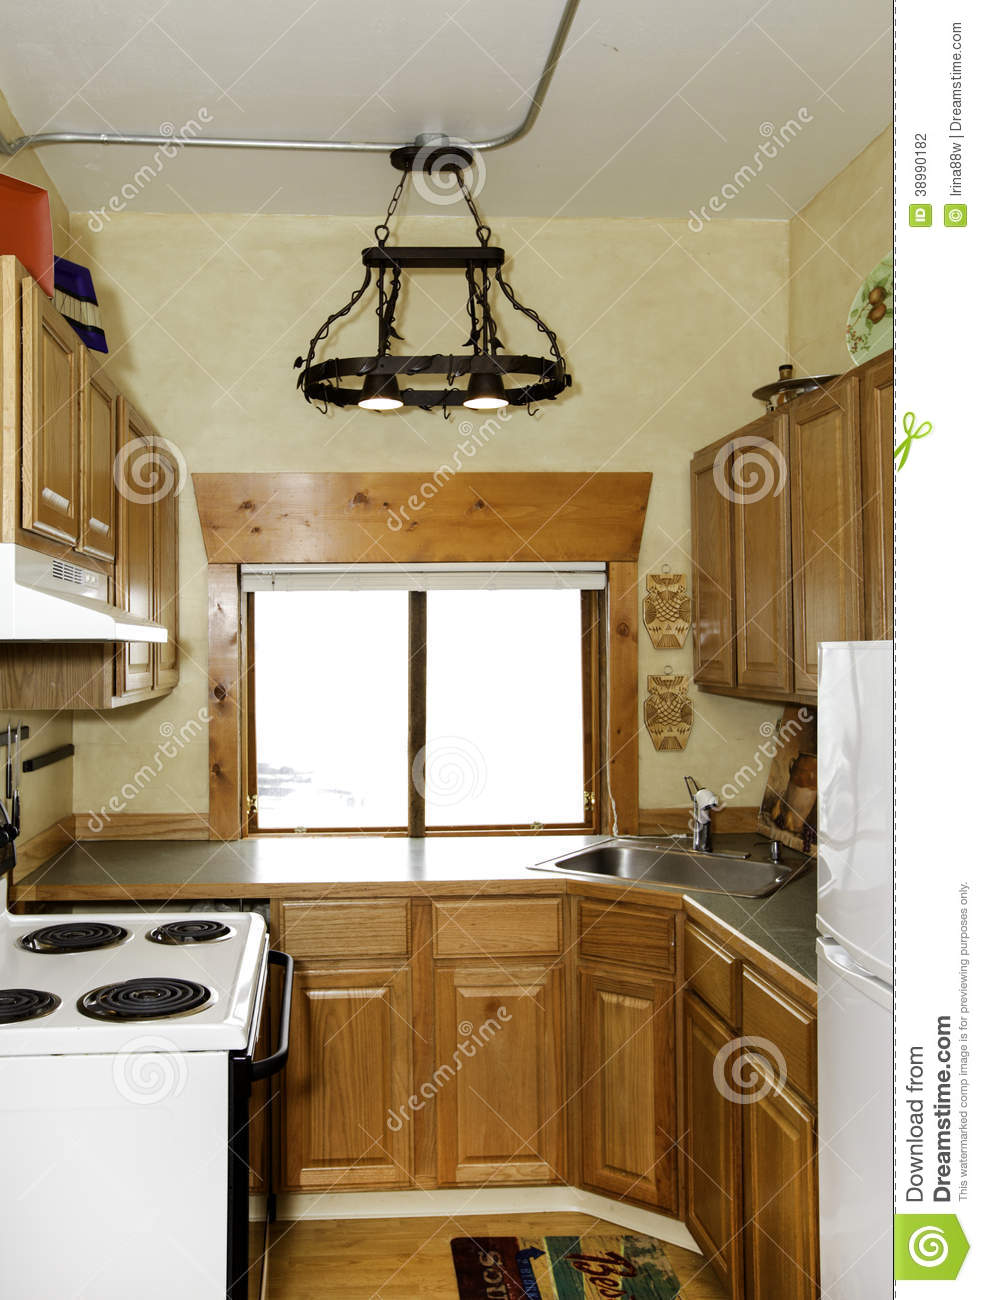 Small Simple Kitchen Room Stock Photo Image 38990182